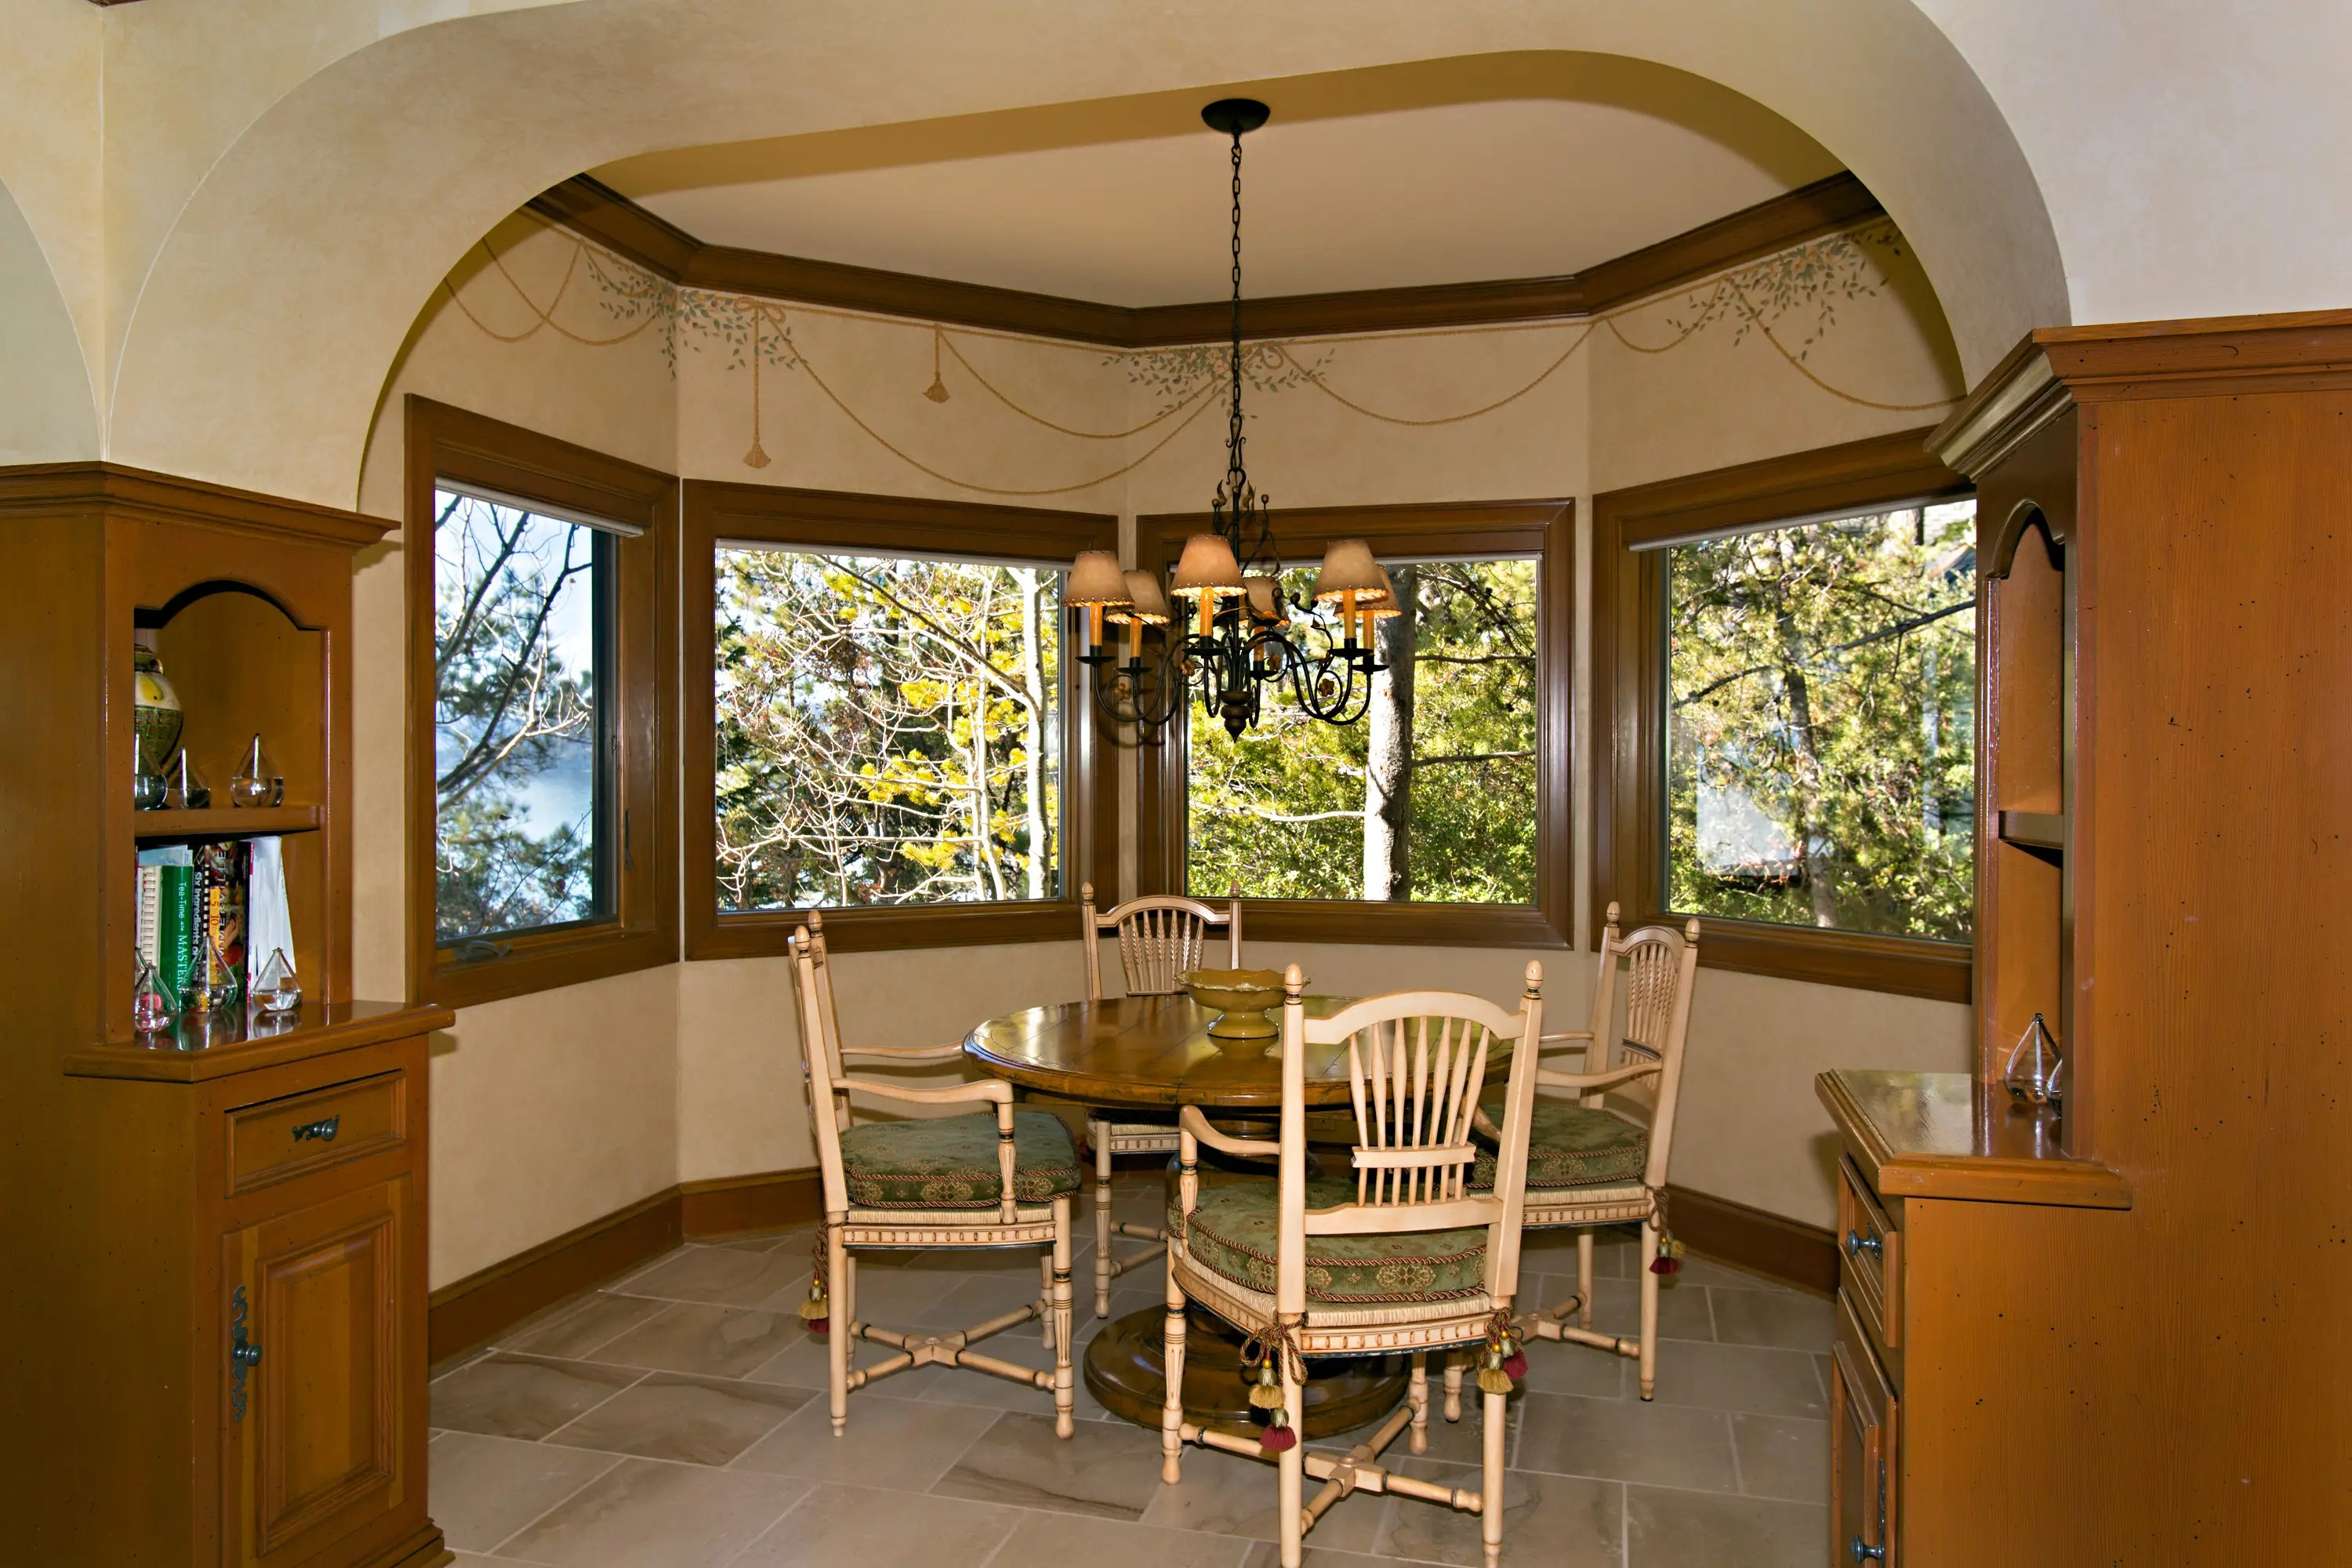 The breakfast nook conveys the feeling of eating in nature.